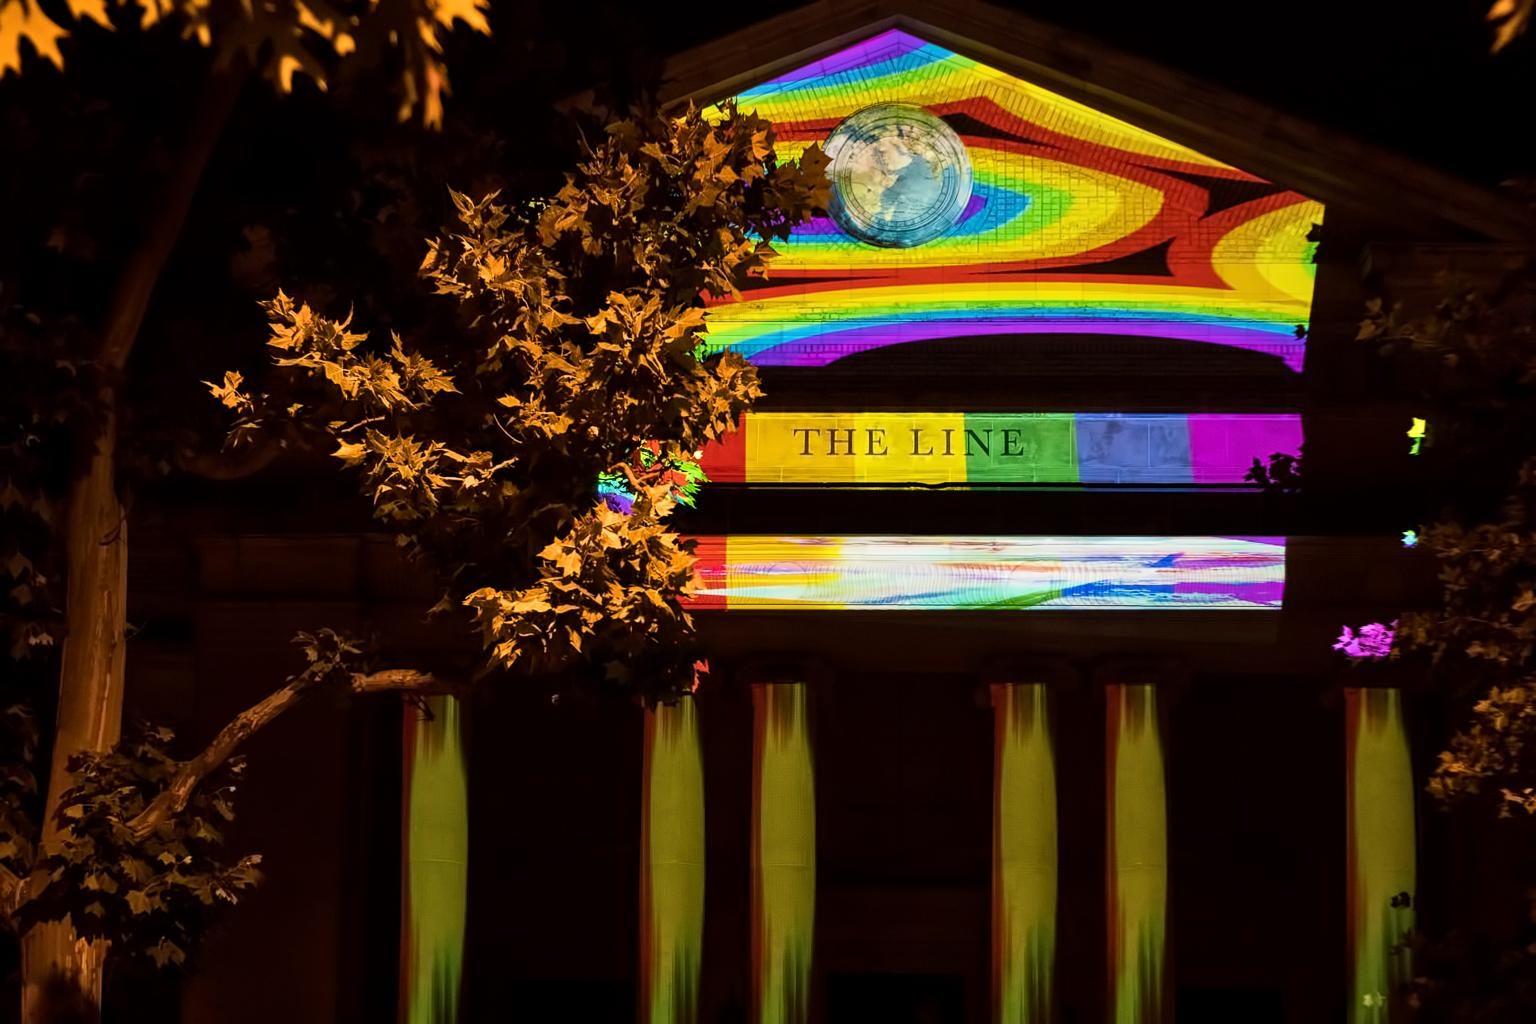 Just as they did last year, LINE DC will be working with artist Robin Bell to light up the exterior of the hotel with rainbow projections, but new to the Pride celebrations will be a free yoga class at 6 p.m. on Friday at the Adams Morgan Community Center, led by Simone Jacobson. (Image: Courtesy LINE DC)